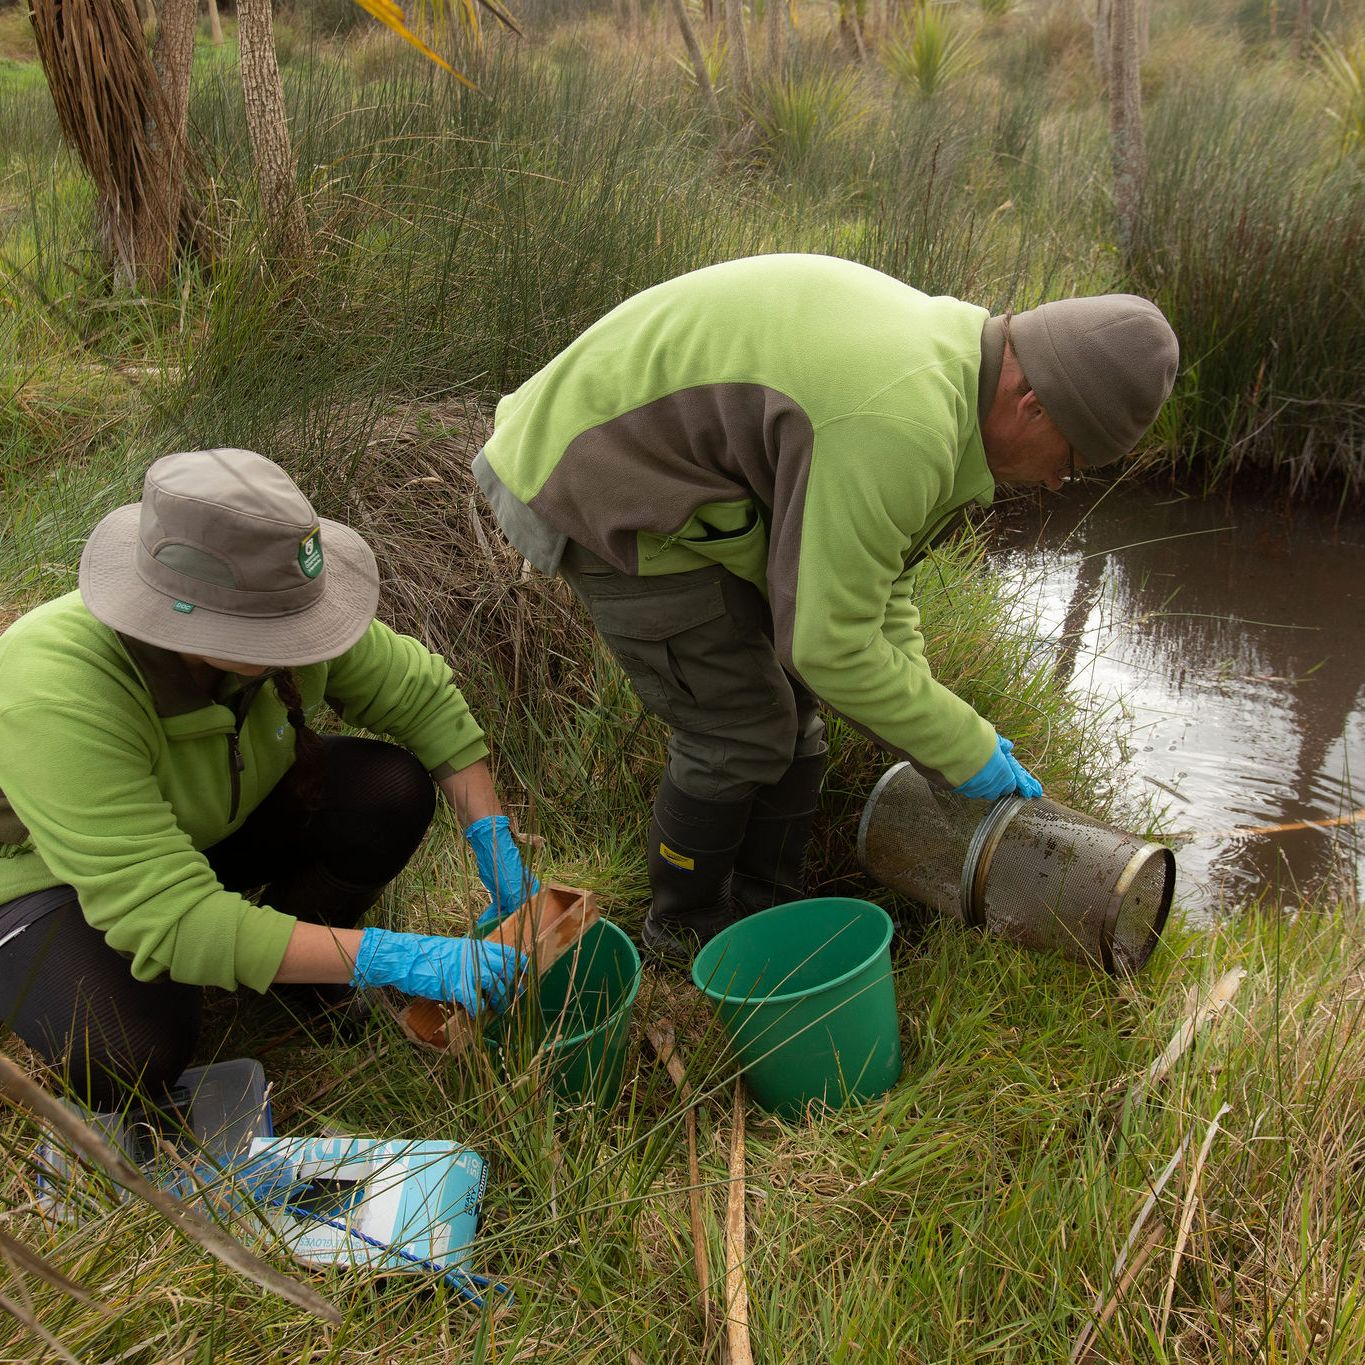 Rangers searching for black mudfish in a Waikato peat lake.